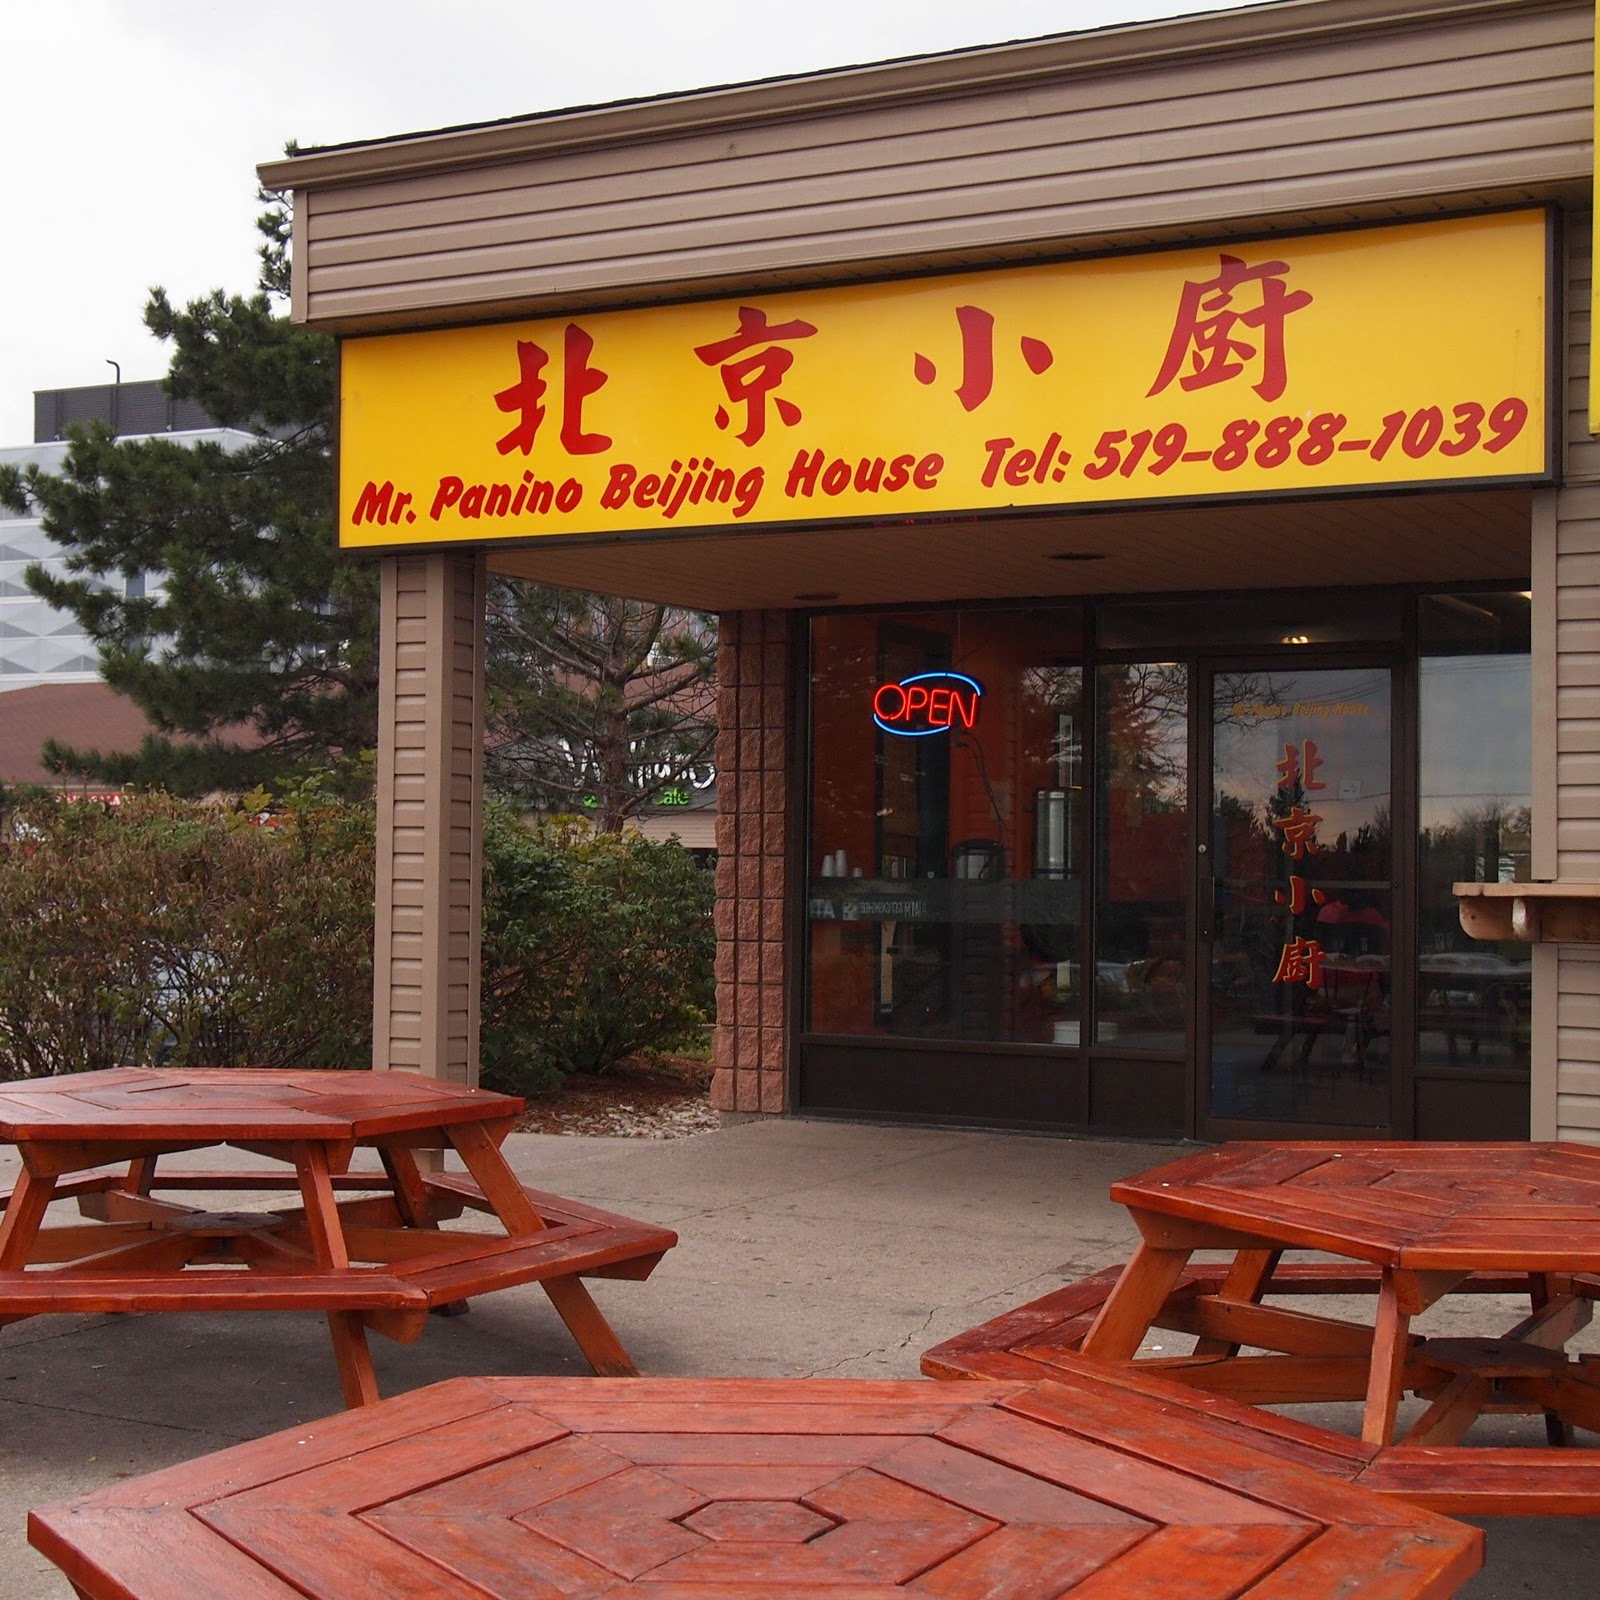 K a t waterloo and laurier for Asian cuisine restaurant names